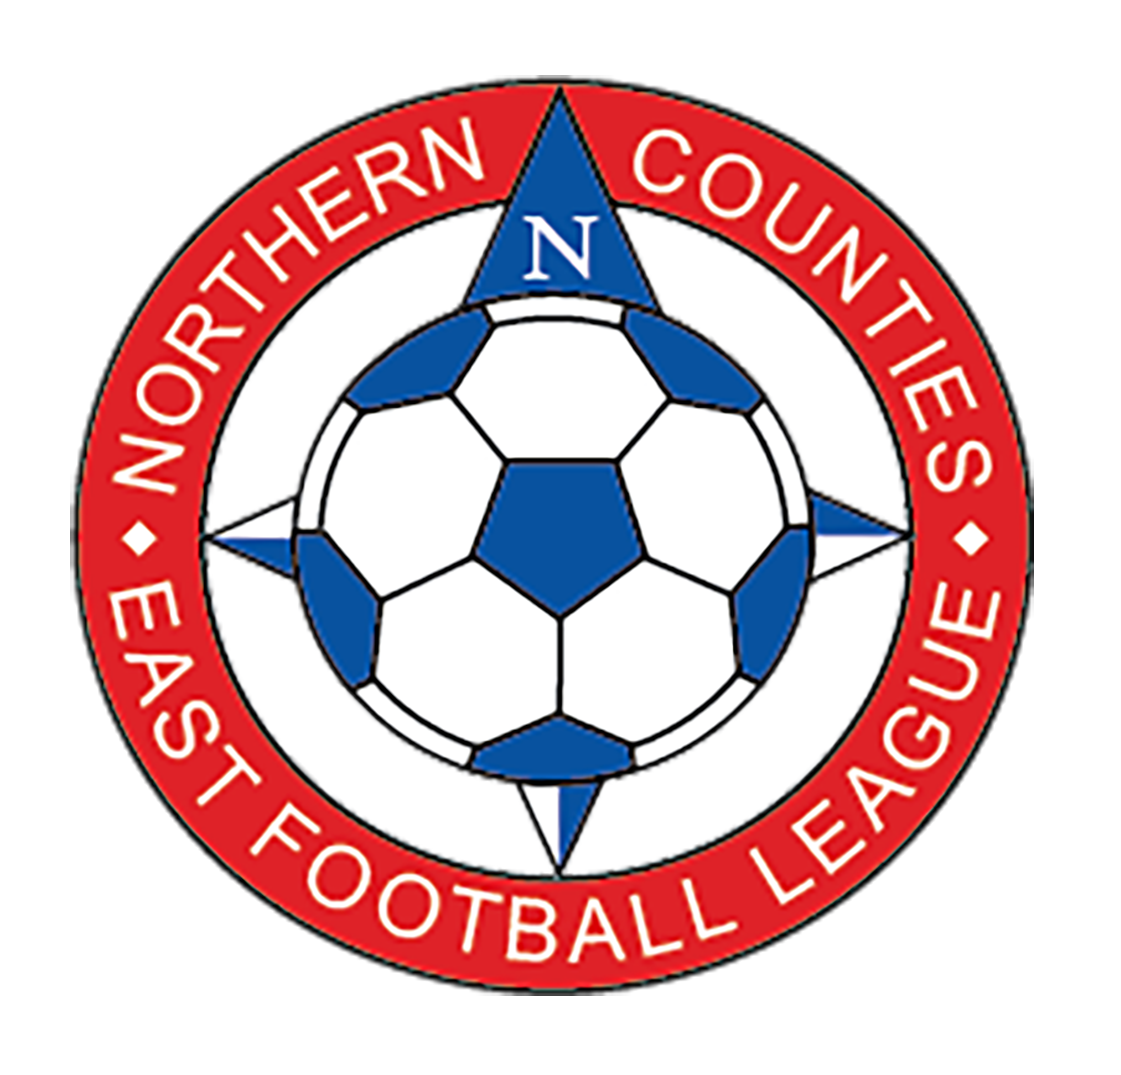 North Eastern Counties